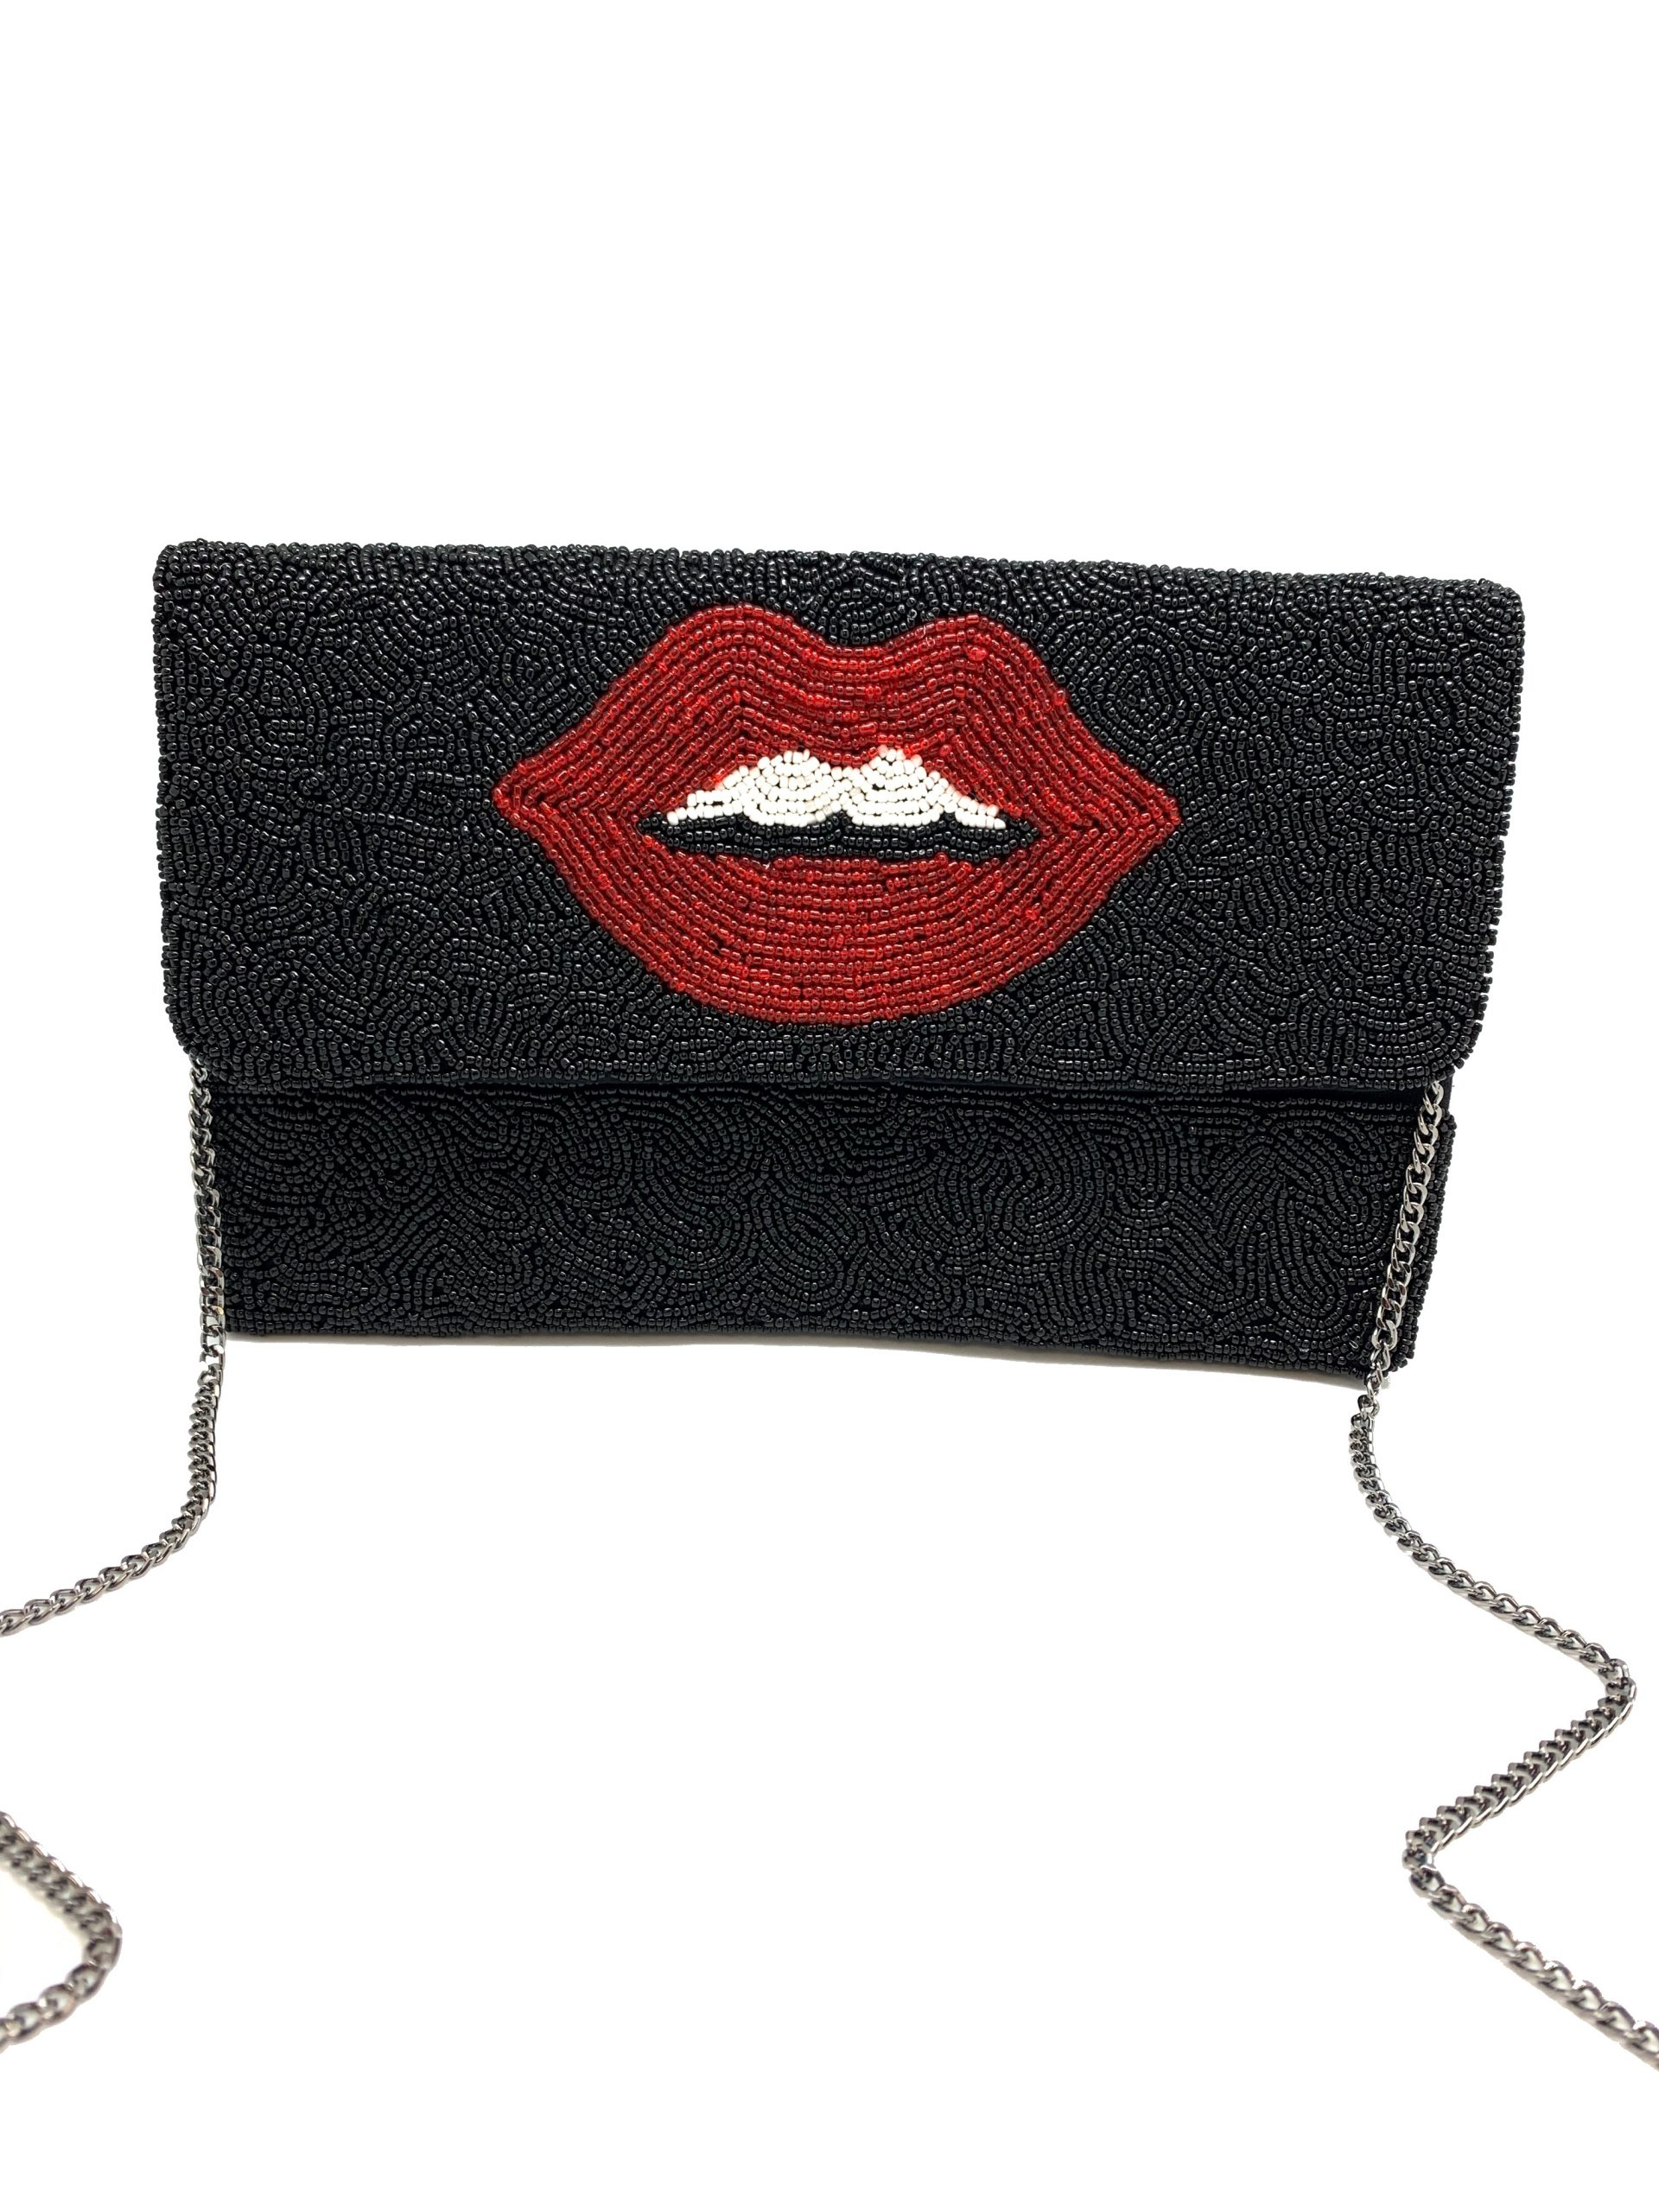 RED LIP BAG ON BLACK BACKGROUND